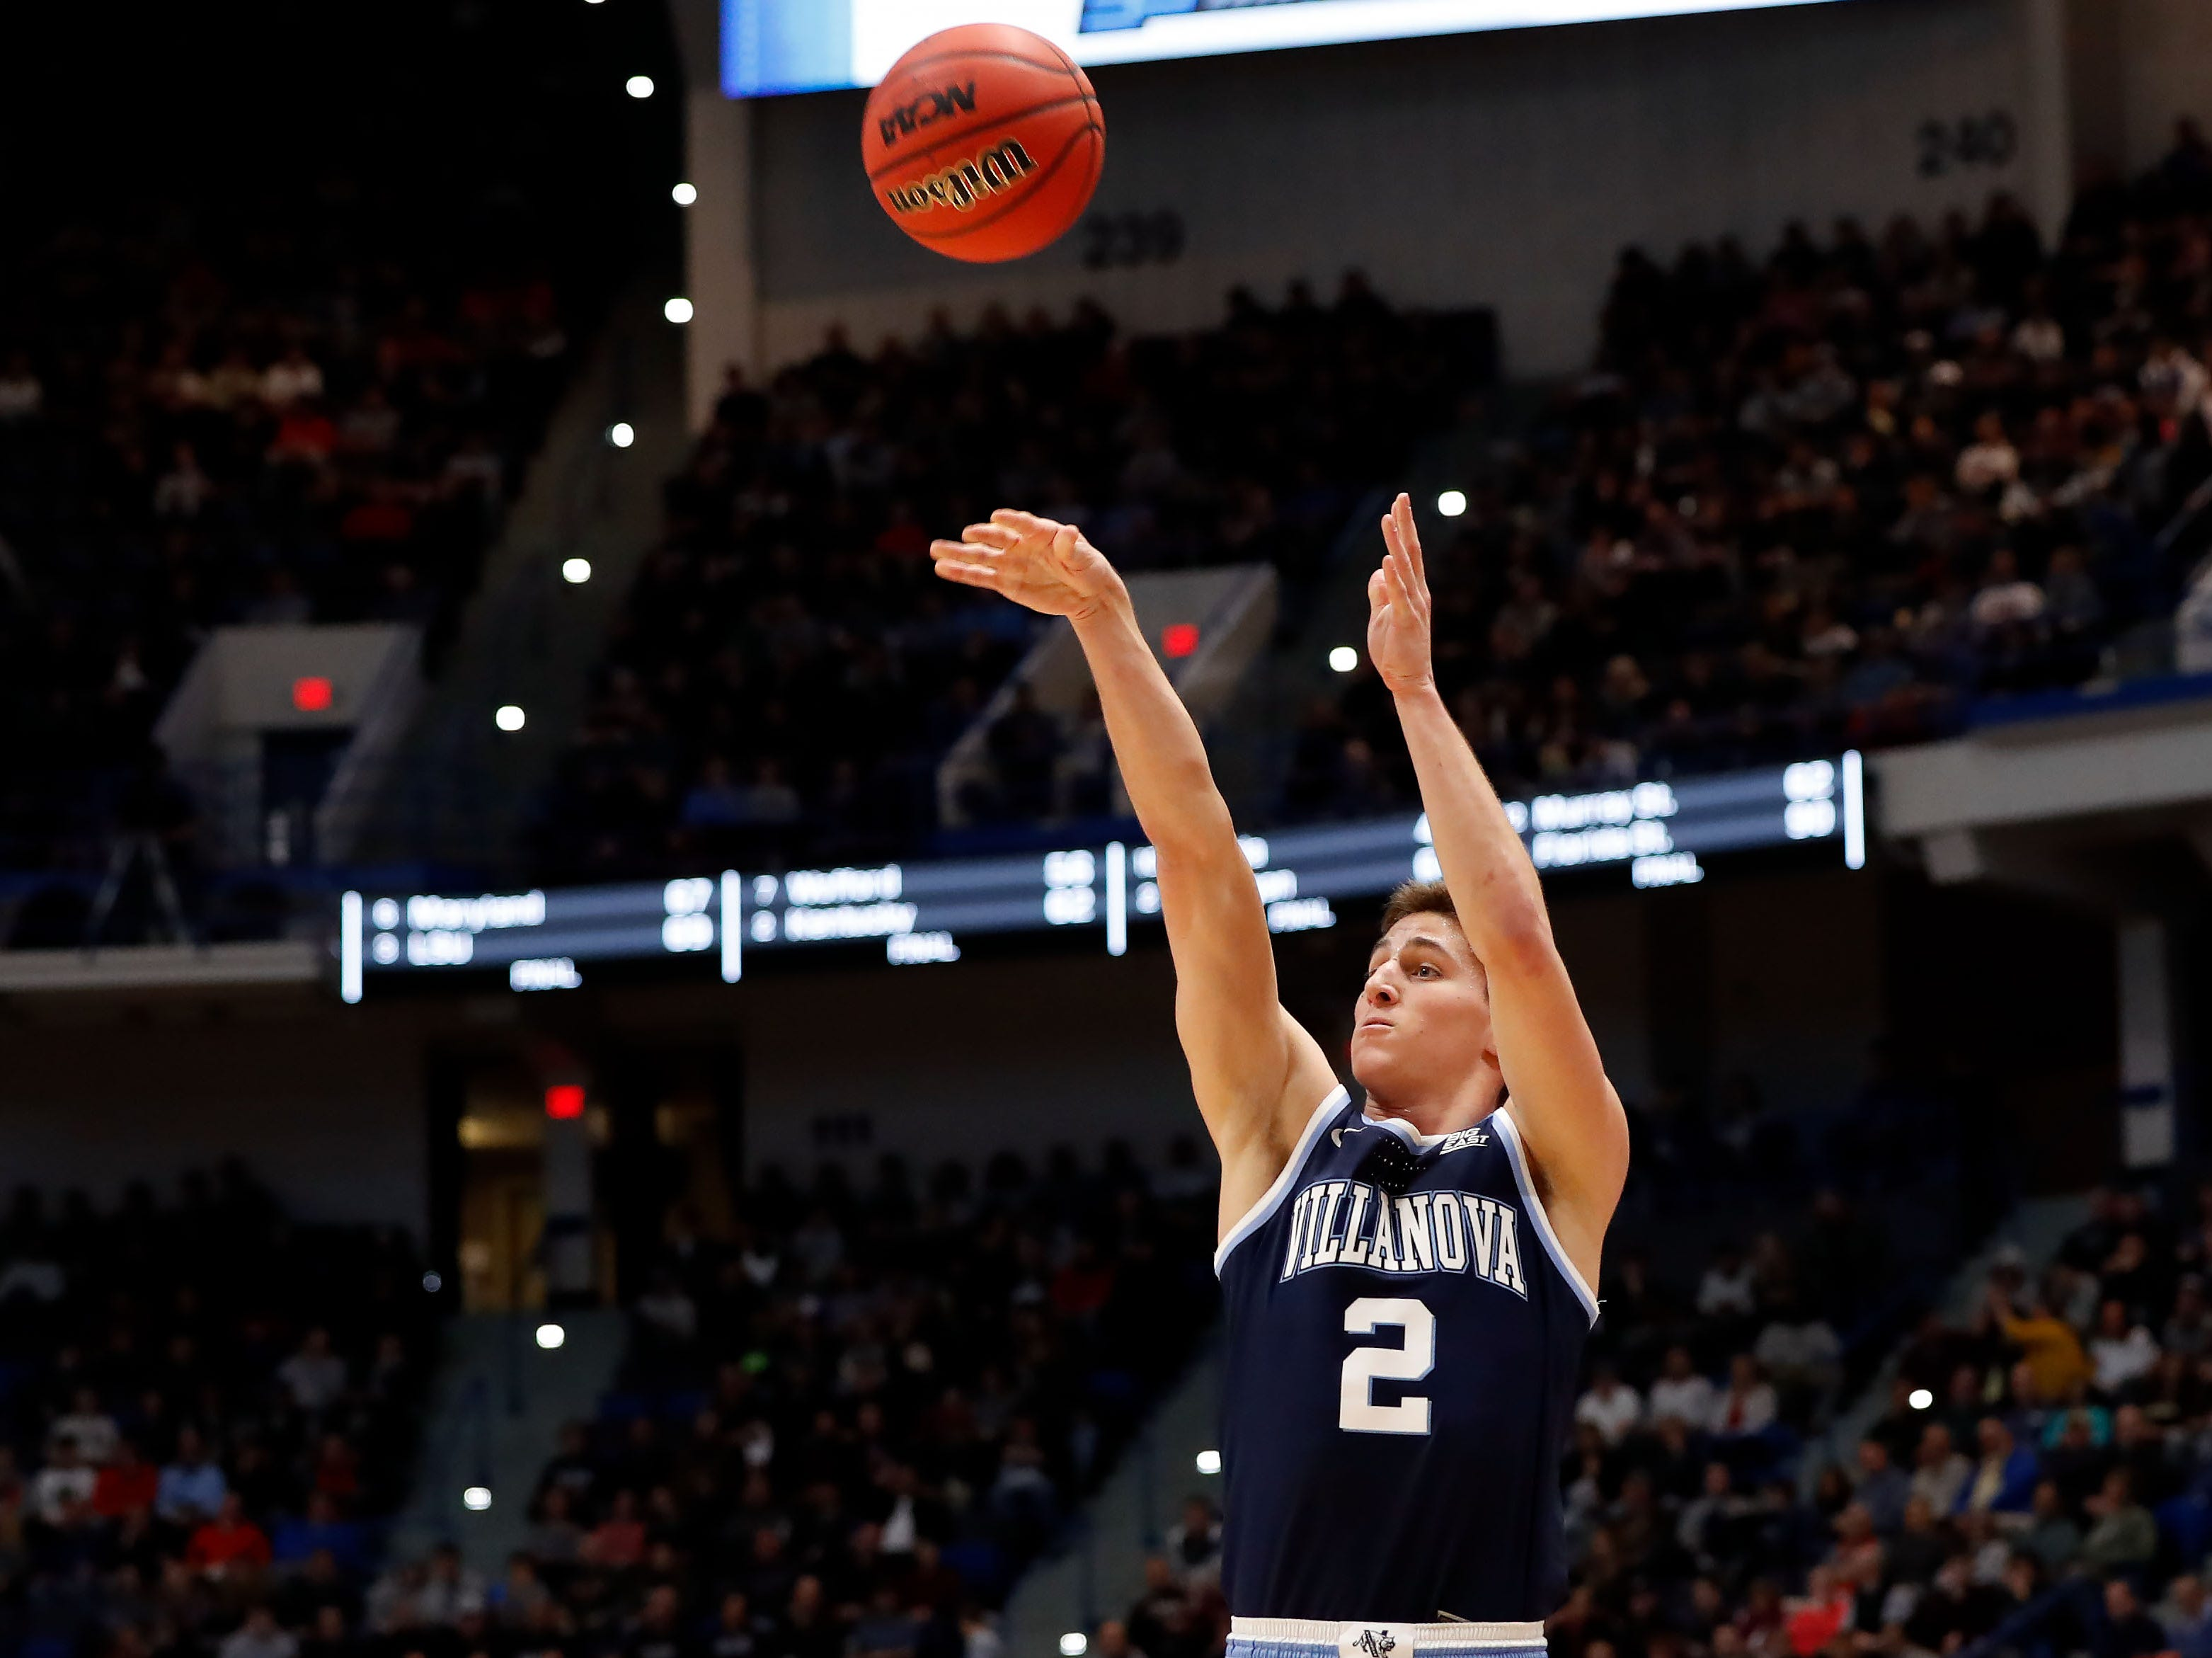 Mar 23, 2019; Hartford, CT, USA; Villanova Wildcats guard Collin Gillespie (2) attempts a three point shot against the Purdue Boilermakers during the second half of a game in the second round of the 2019 NCAA Tournament at XL Center. Mandatory Credit: David Butler II-USA TODAY Sports